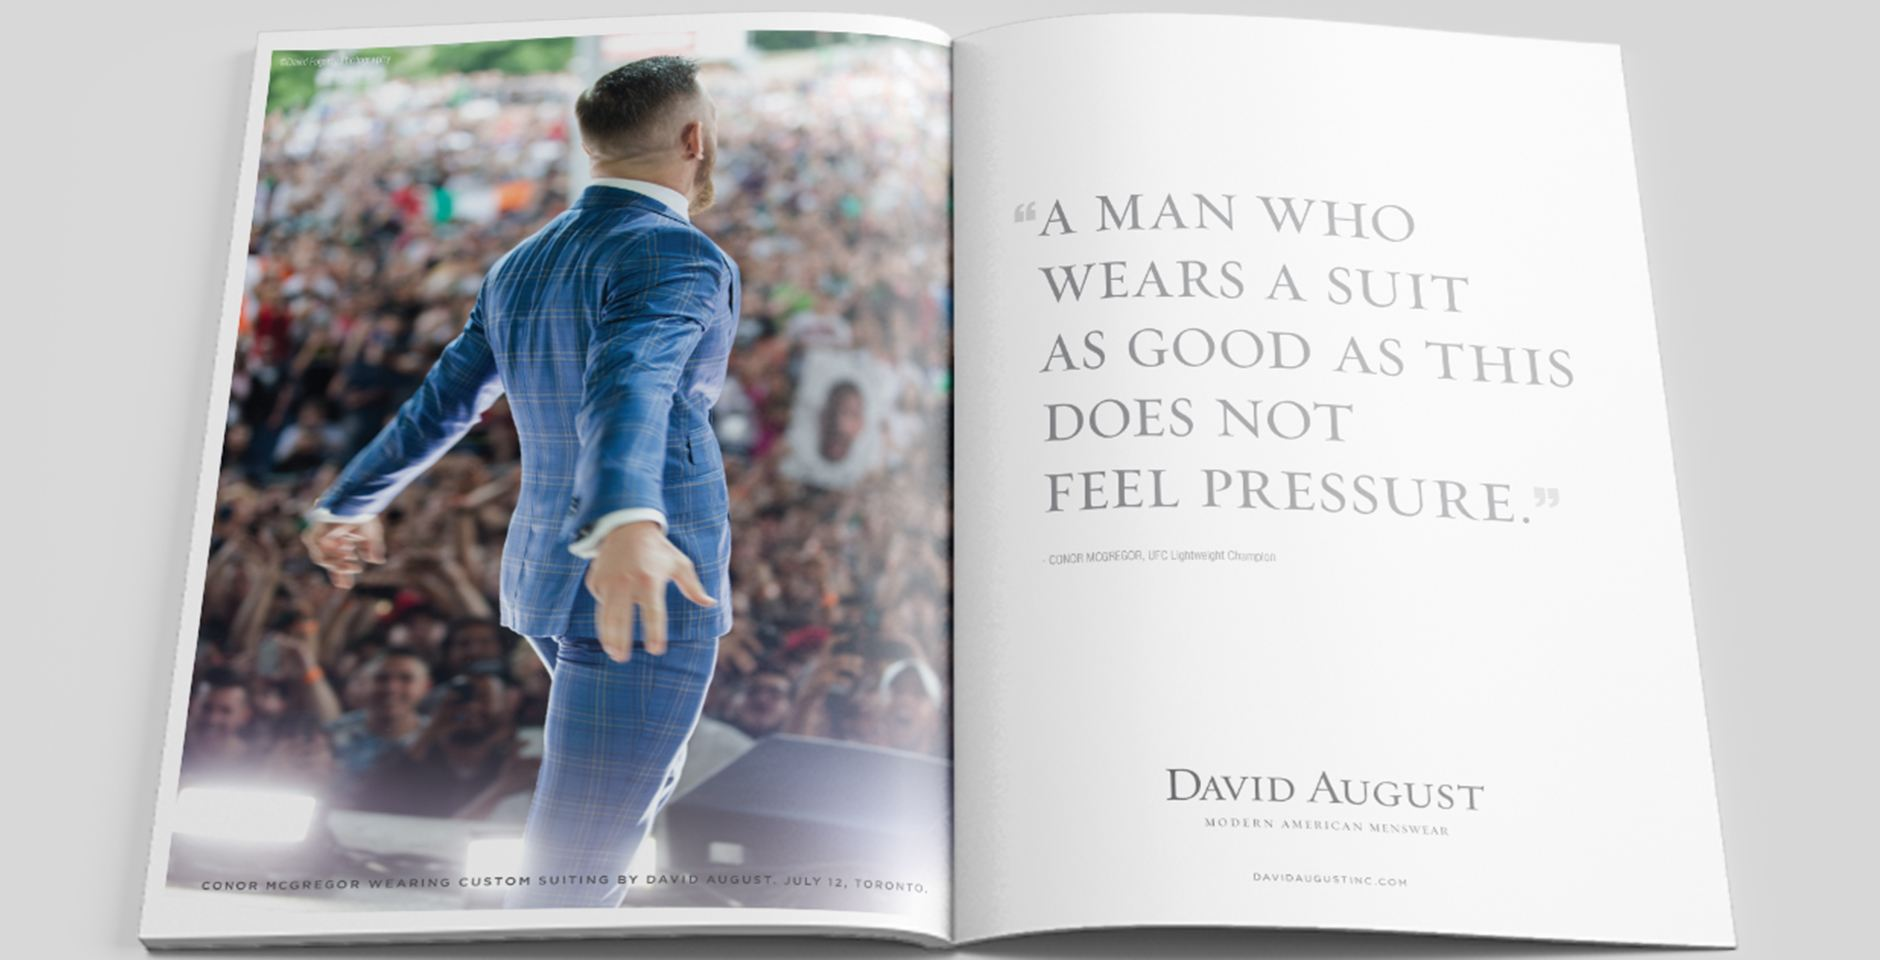 david august conor mcgregor magazine spread blue suit promotion fight